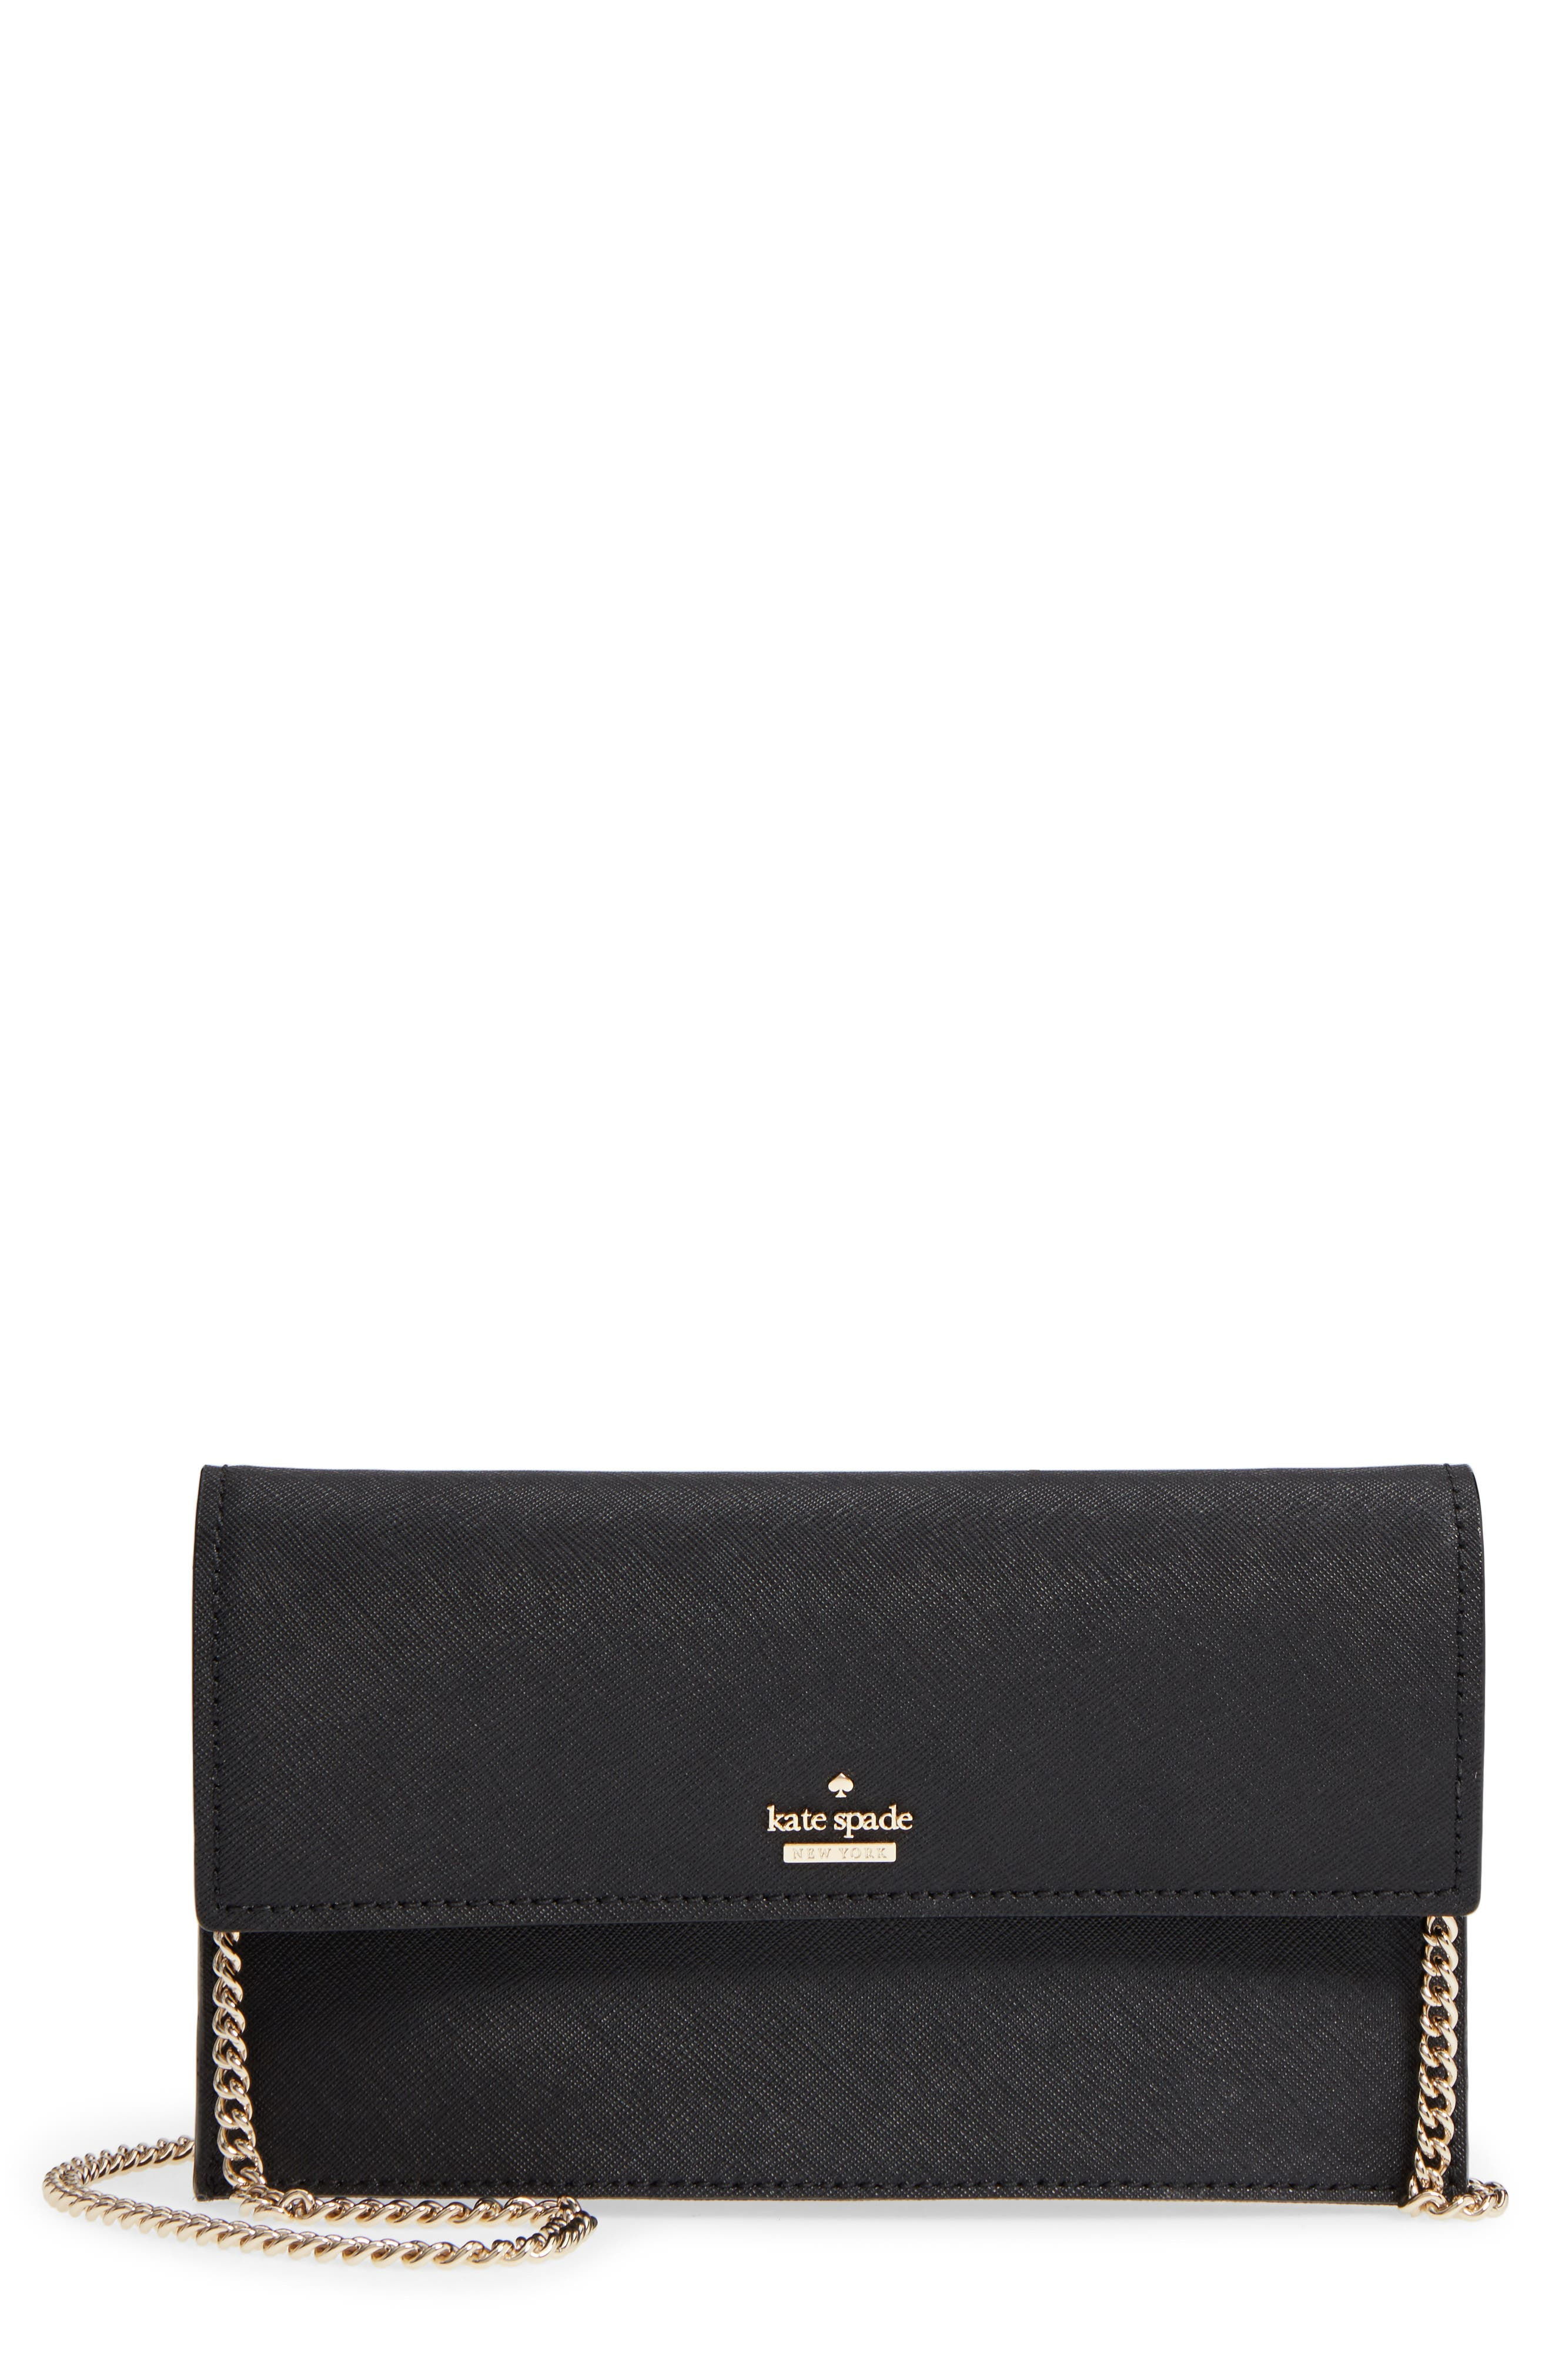 cameron street - brennan leather wallet & card case,                         Main,                         color, Black